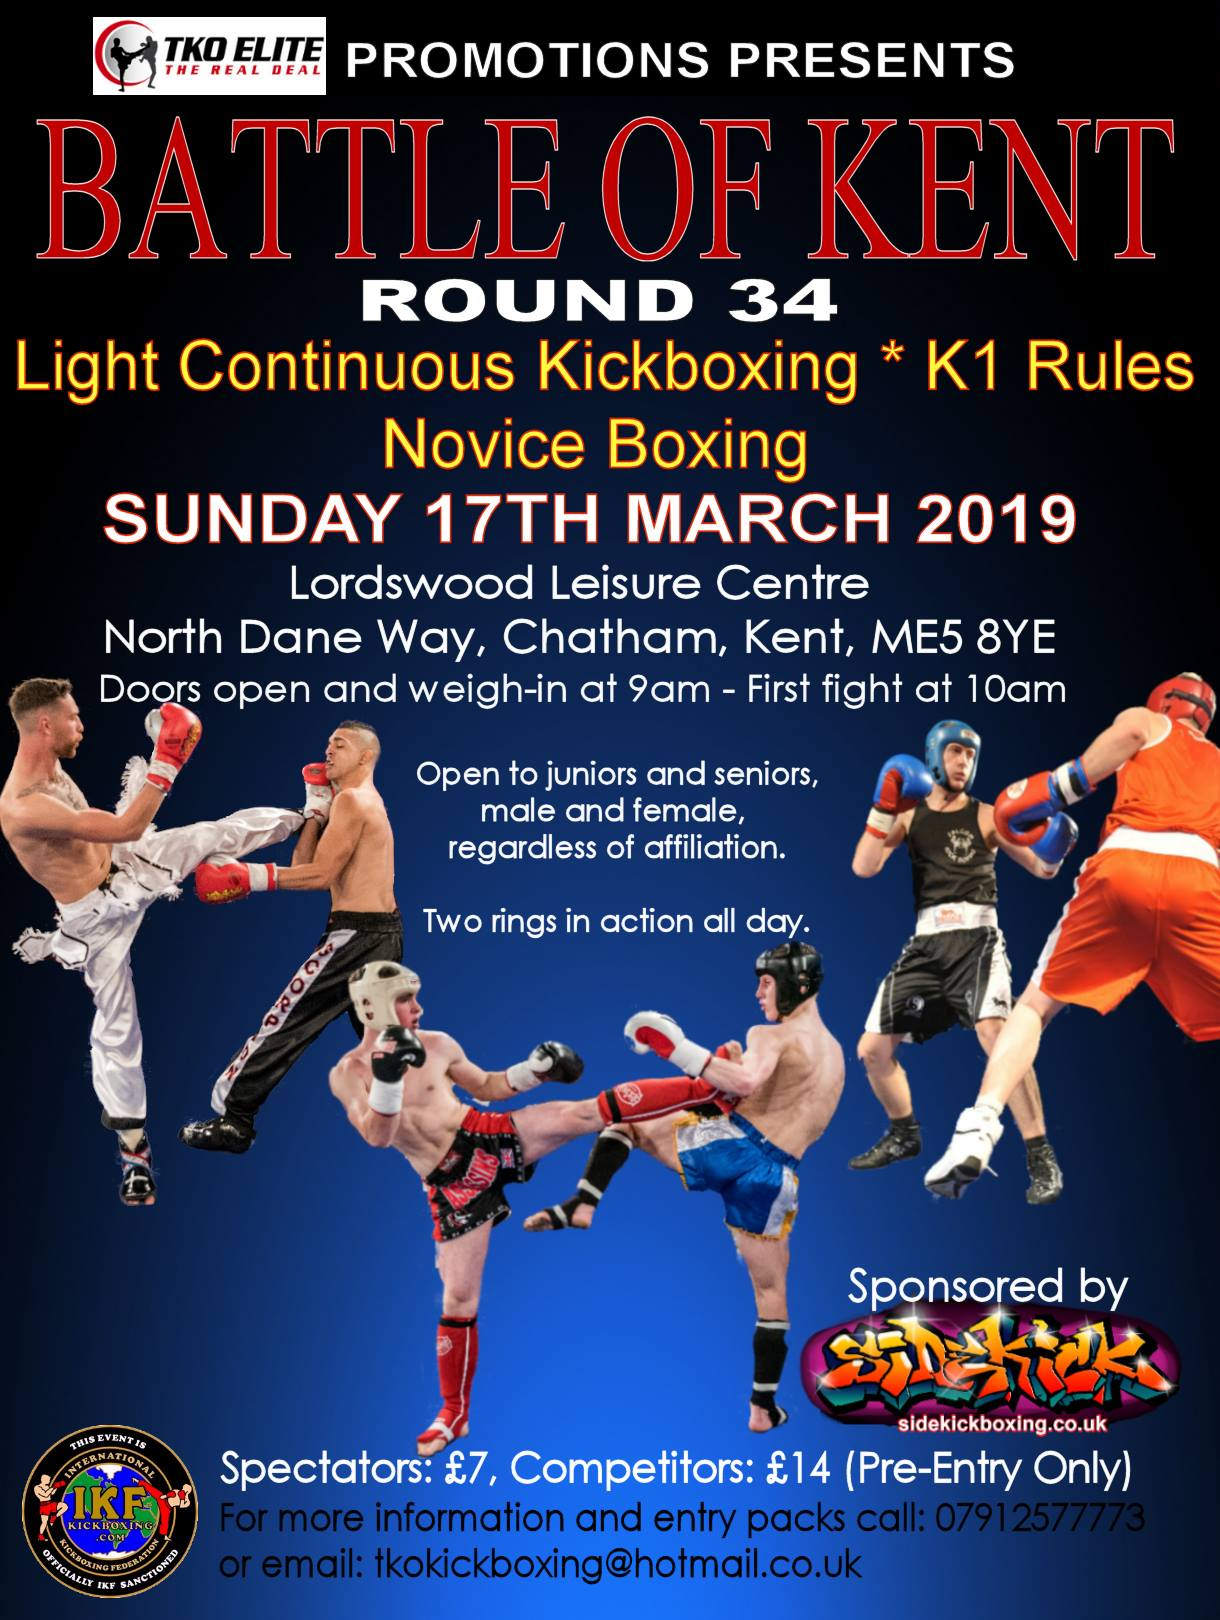 Kickboxing K1 Boxing event in Chatham